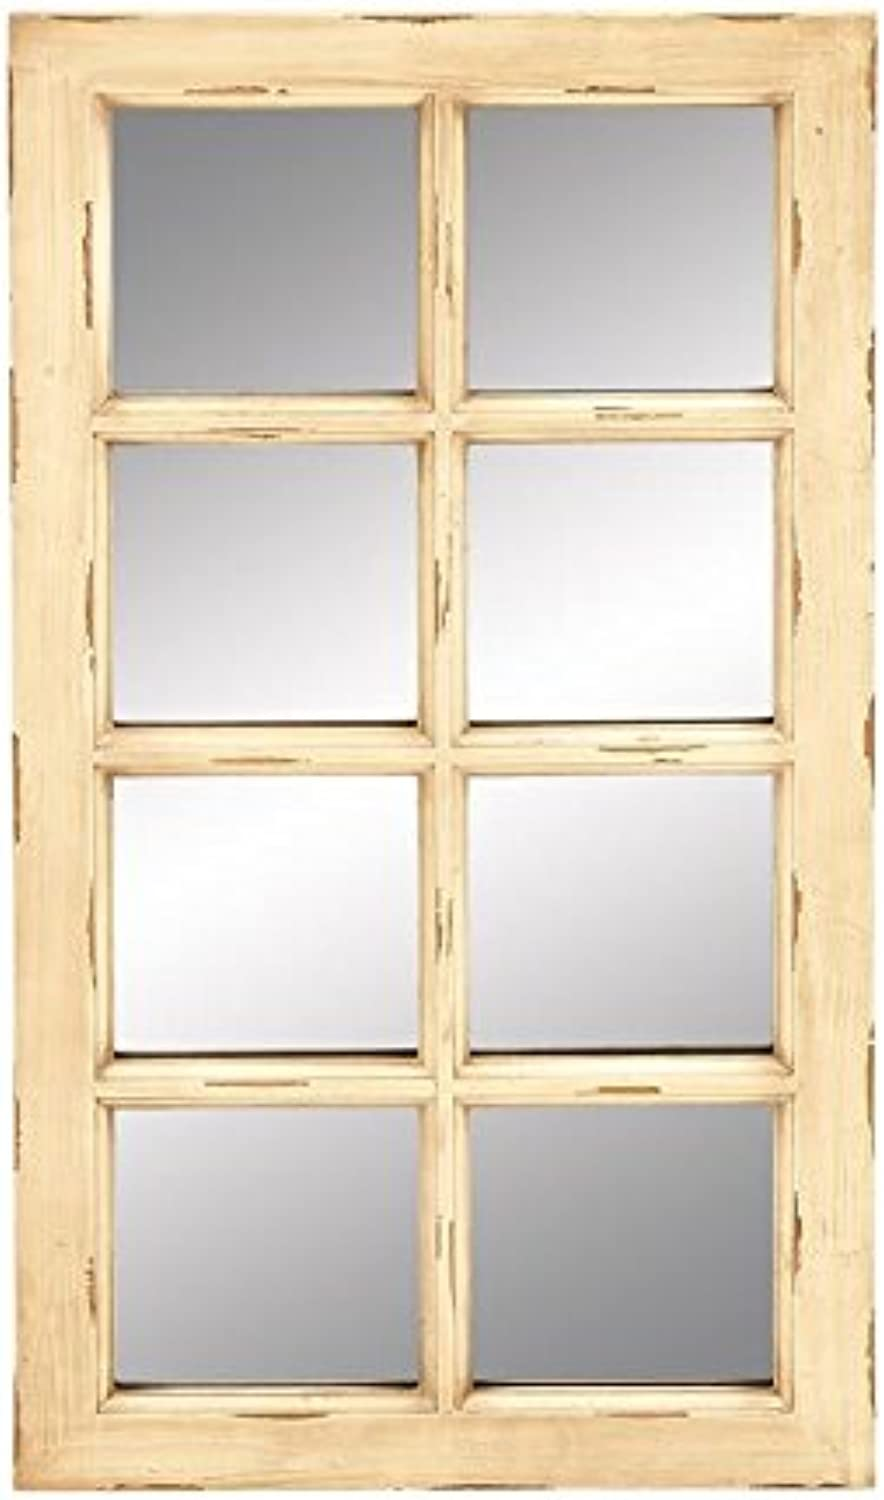 Deco 79 53176 Wood Mirror 36 by 20